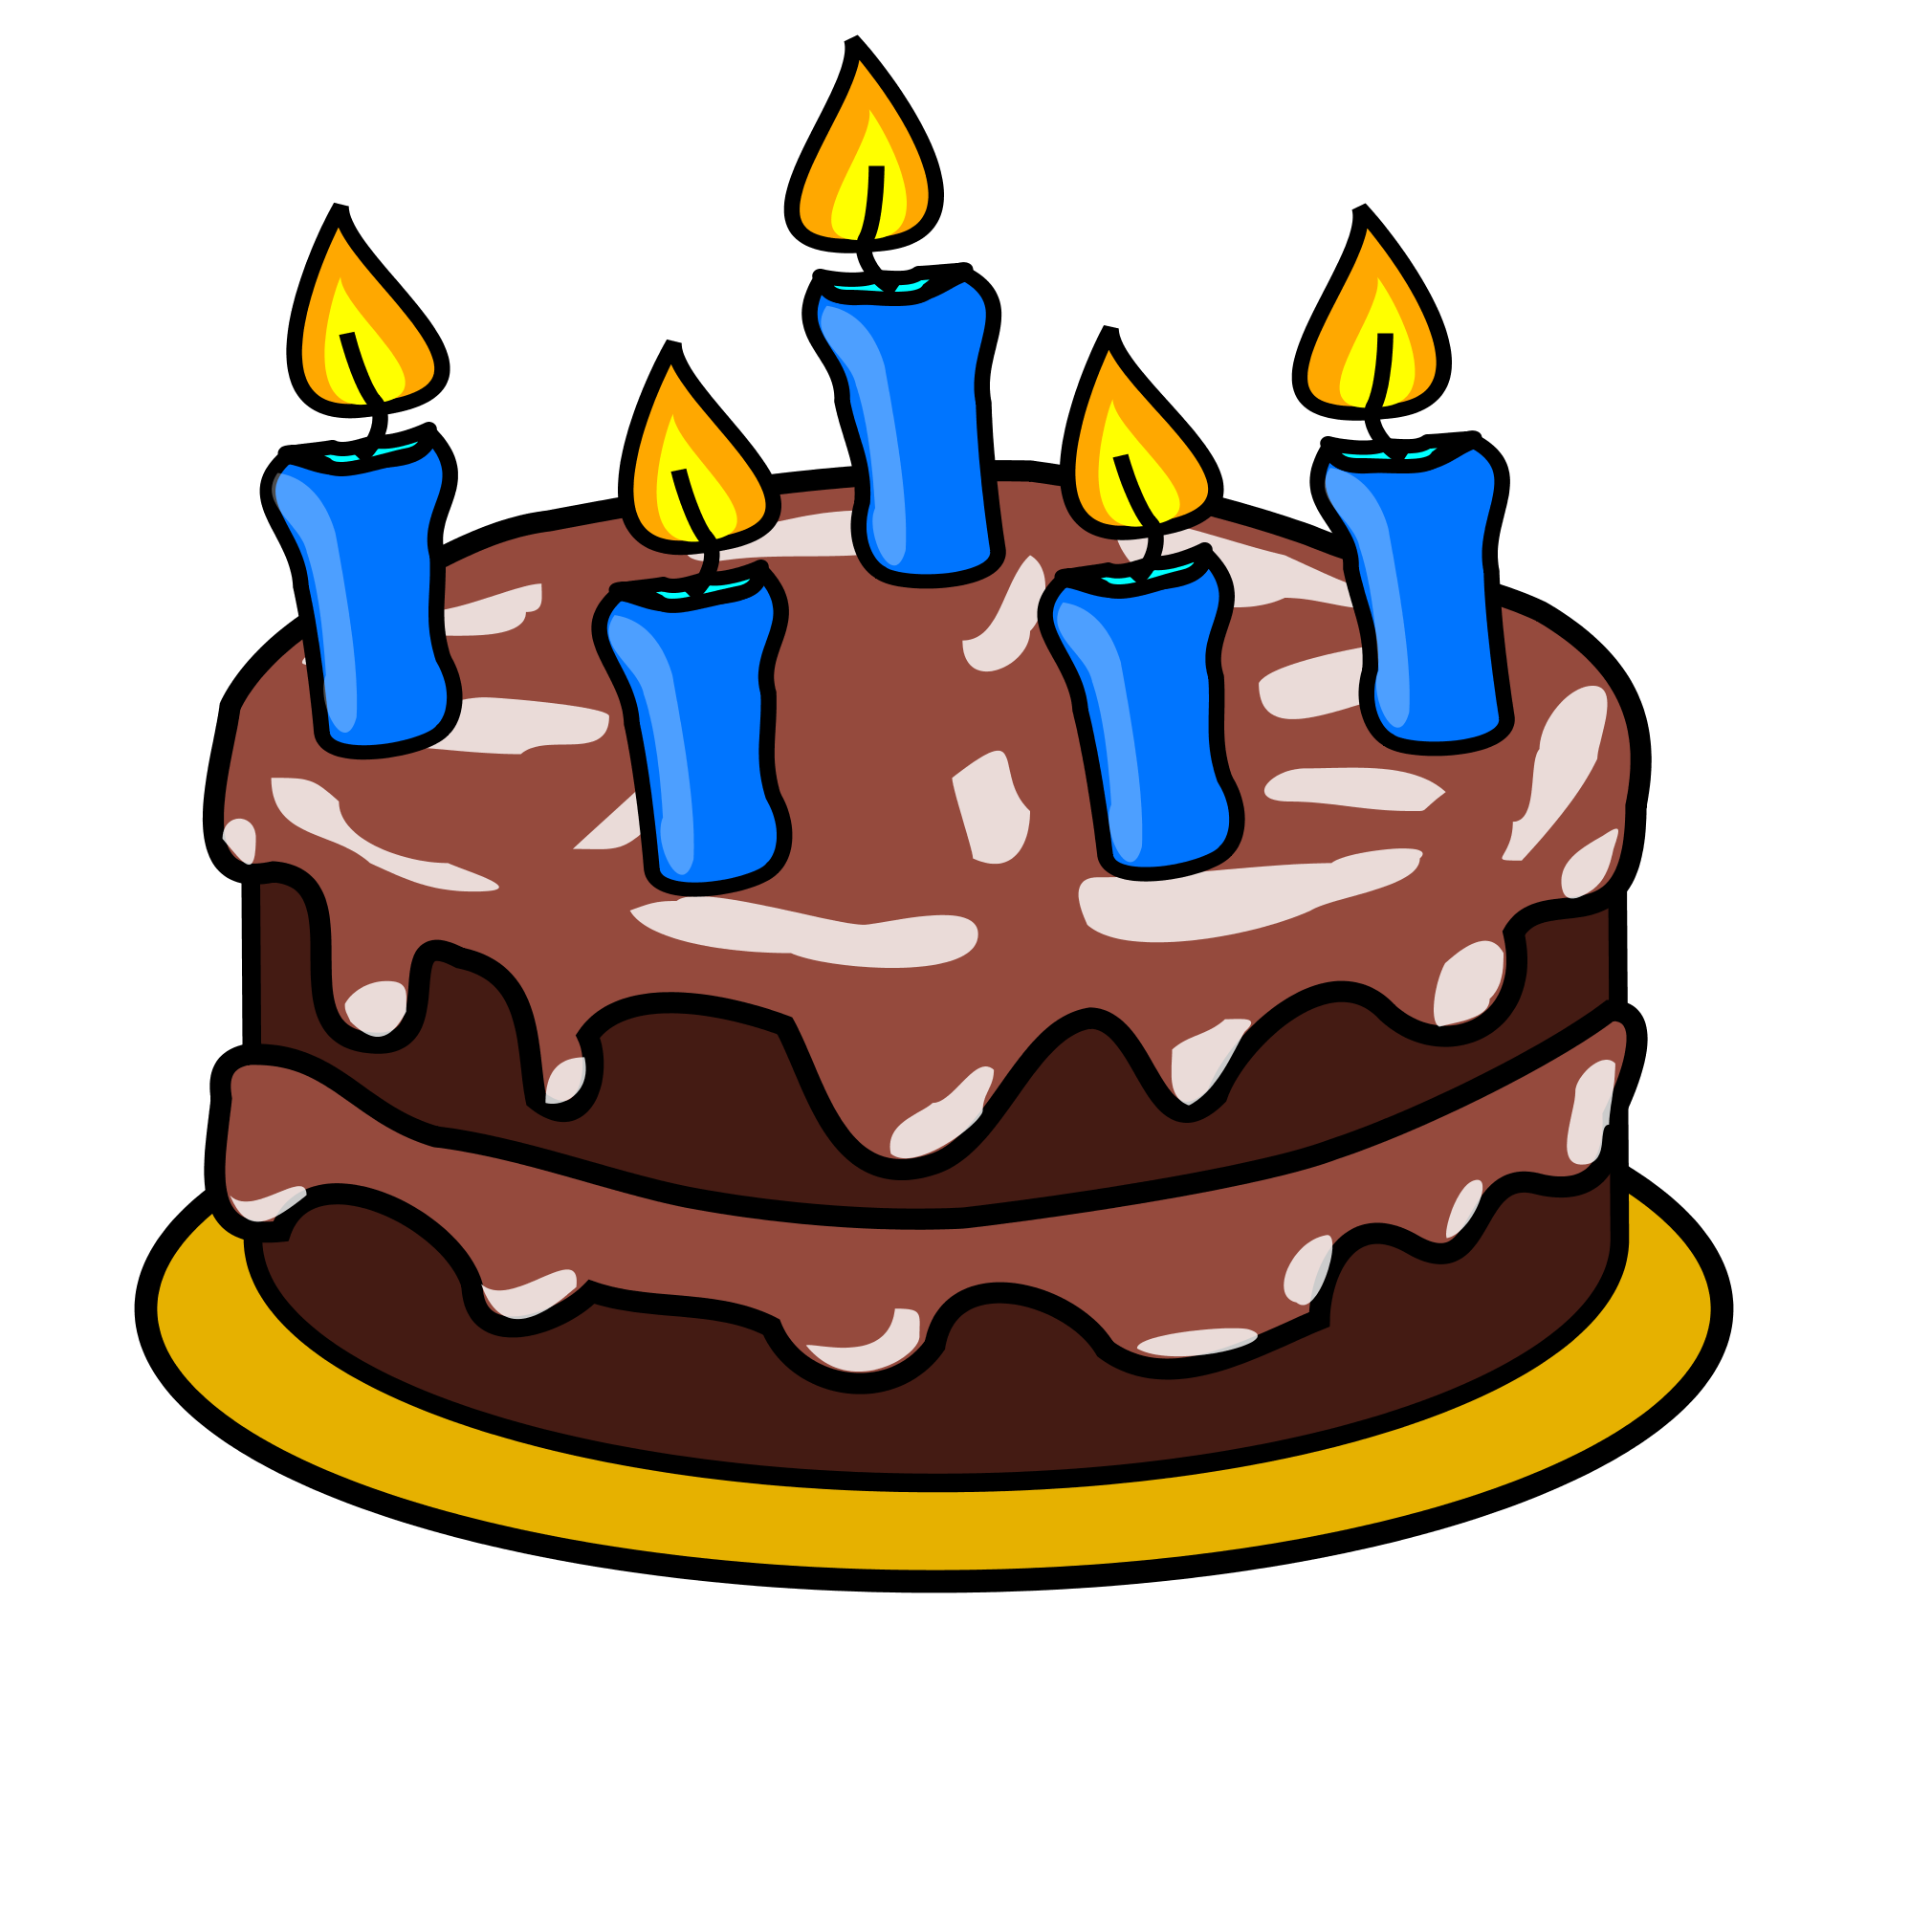 Cake Design Png : Birthday Cake Png - ClipArt Best